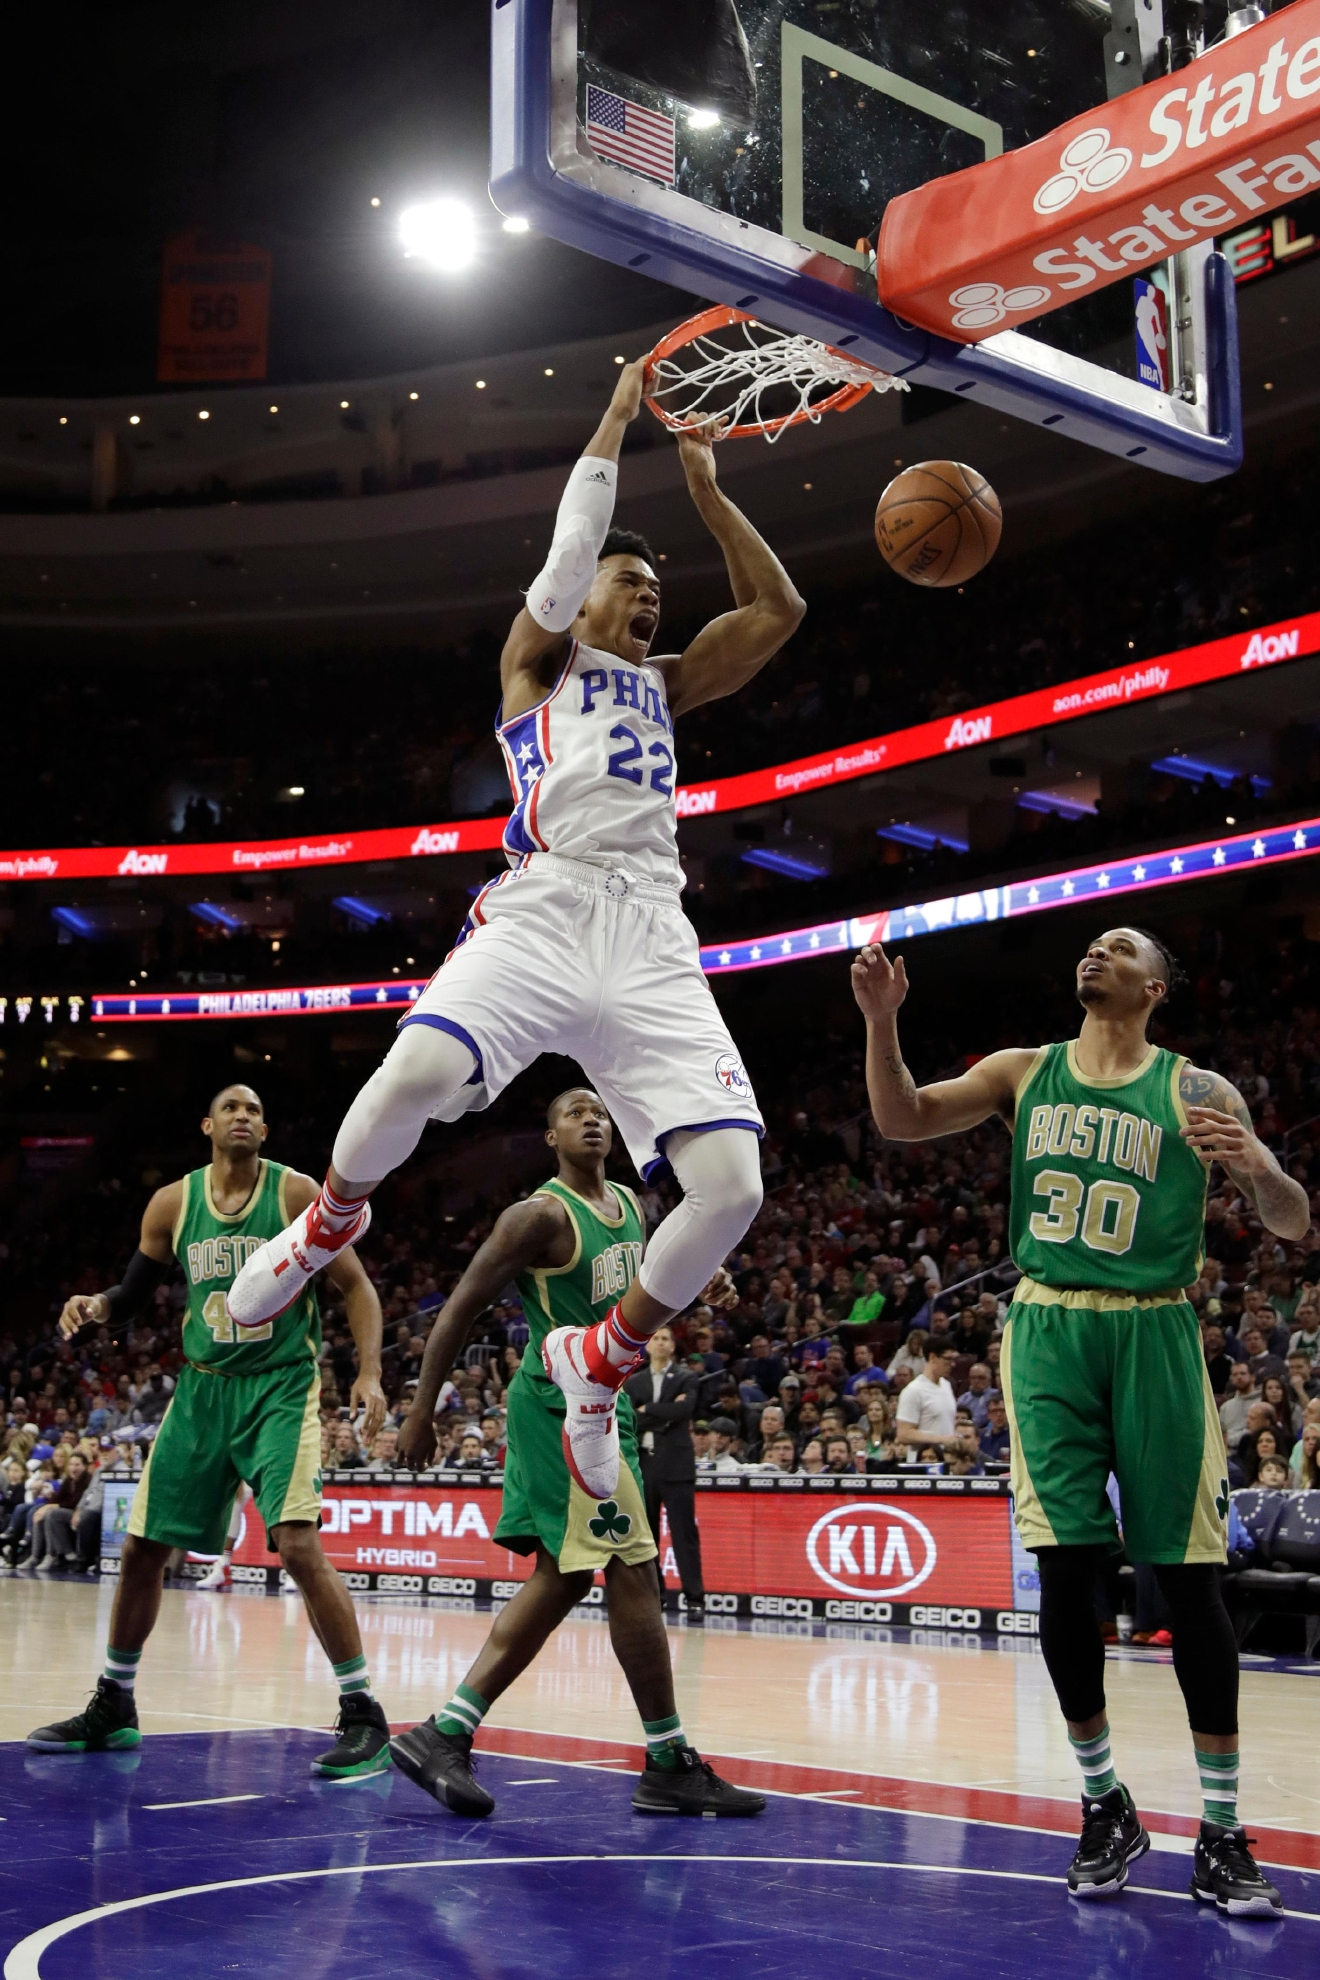 Philadelphia 76ers' Richaun Holmes (22) dunks the ball as Boston Celtics' Gerald Green (30) looks on during the first half of an NBA basketball game, Sunday, March 19, 2017, in Philadelphia. (AP Photo/Matt Slocum)